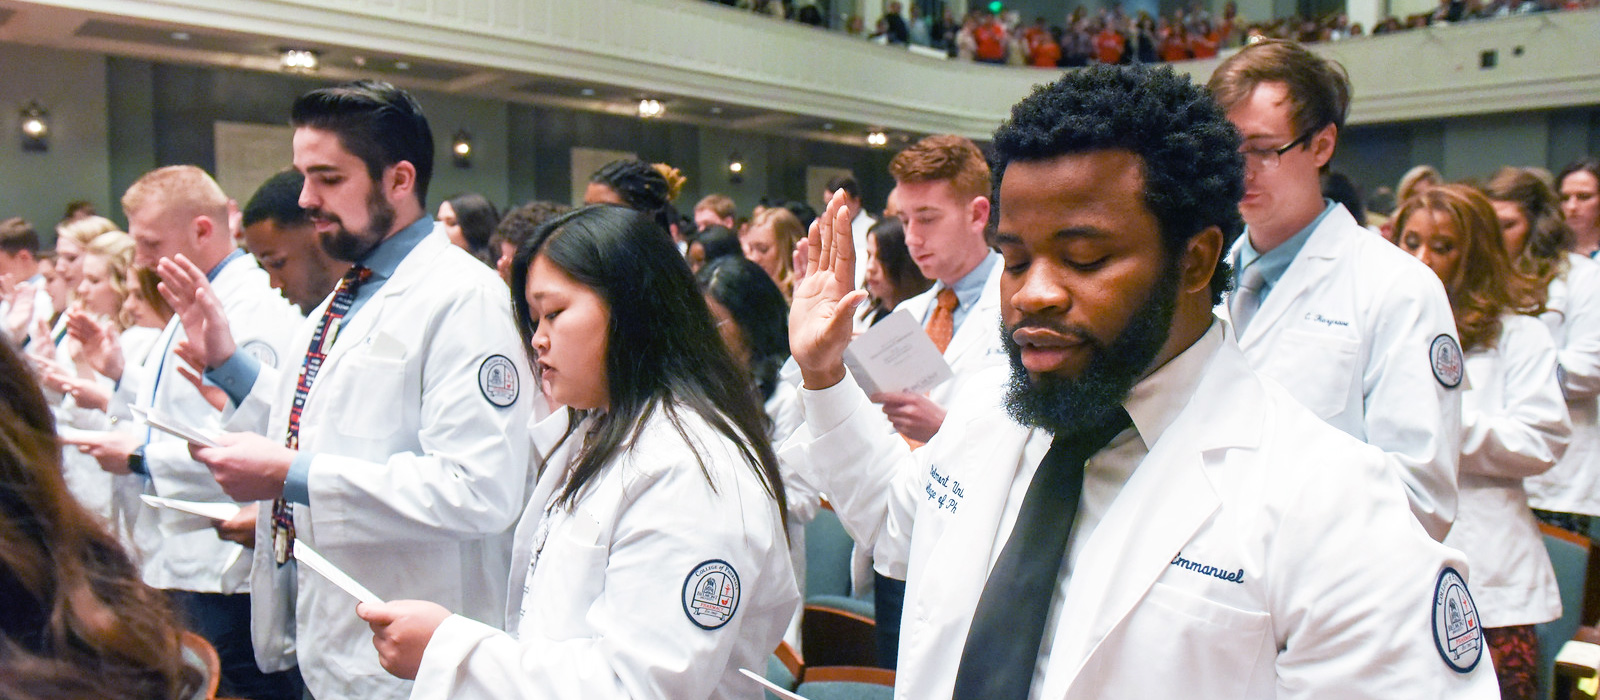 College of Pharmacy Holds White Coat Ceremony